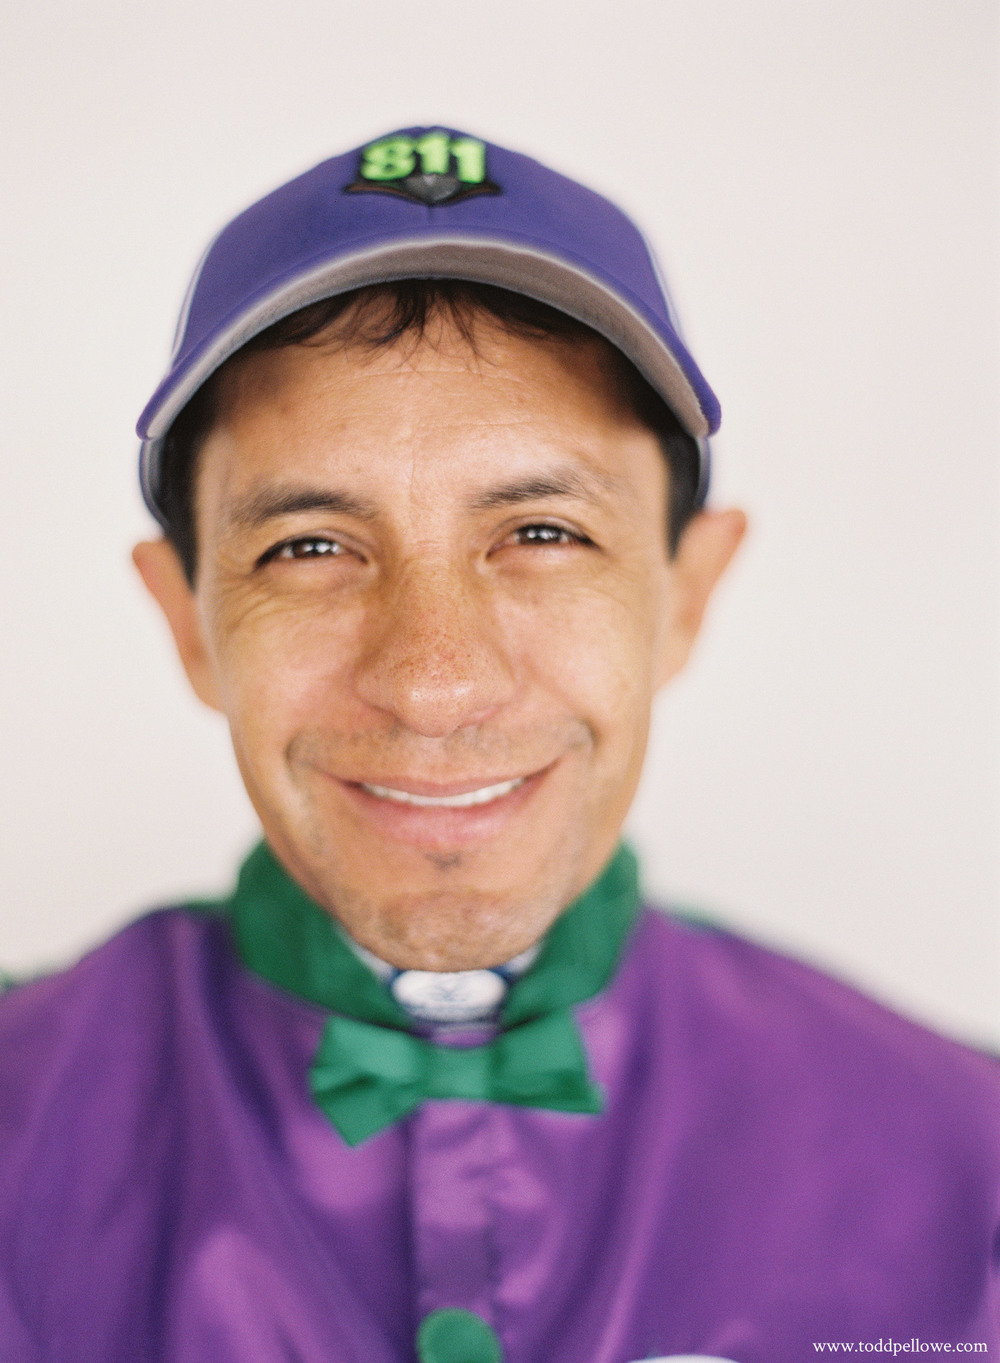 Victor Espinoza at Kentucky Derby 140